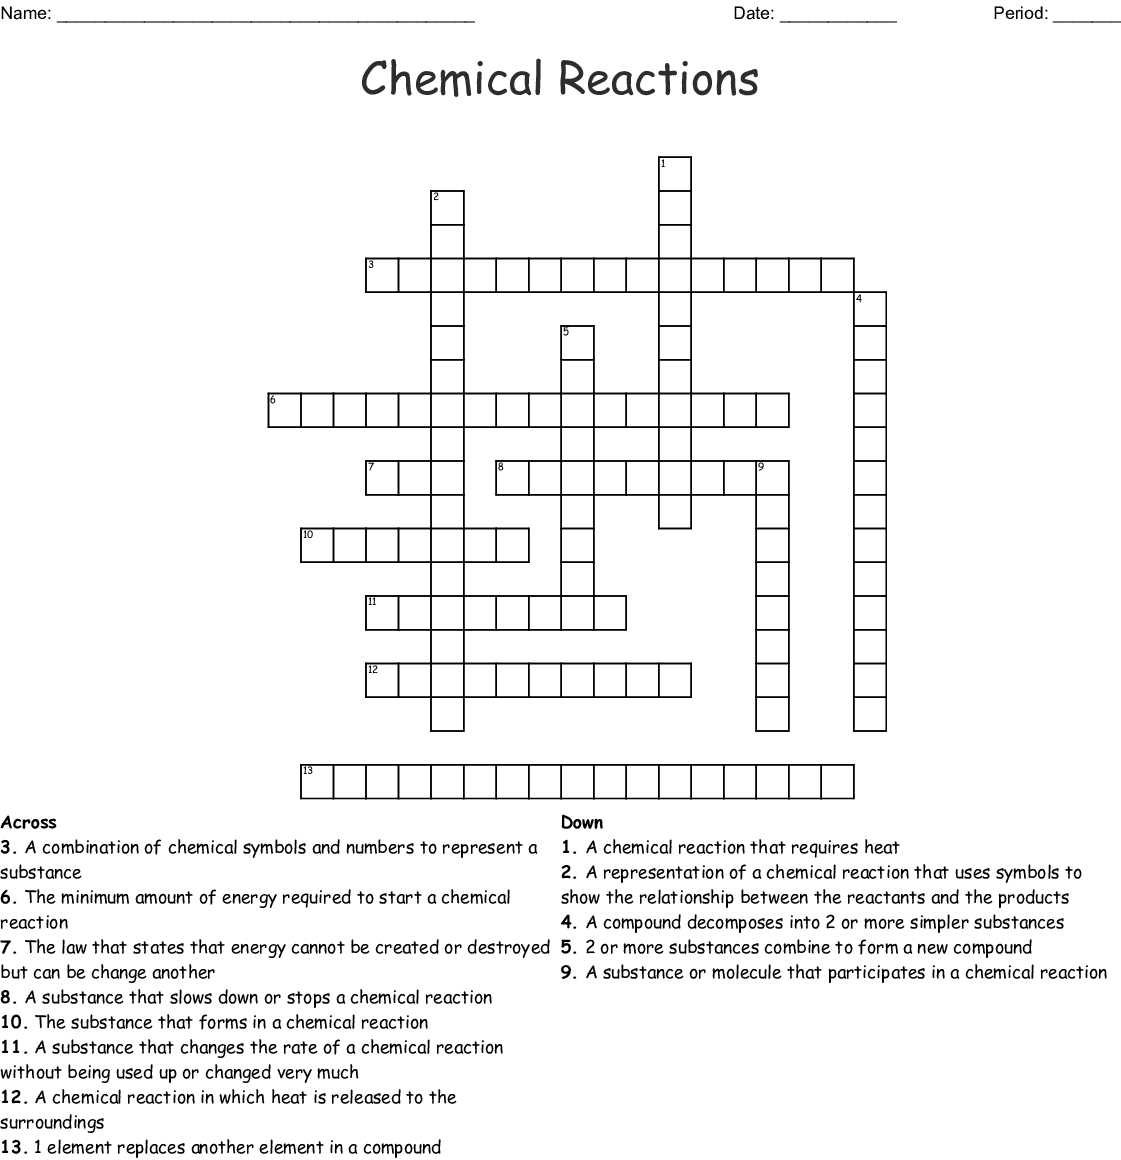 Chemical Reaction Word Search - WordMint